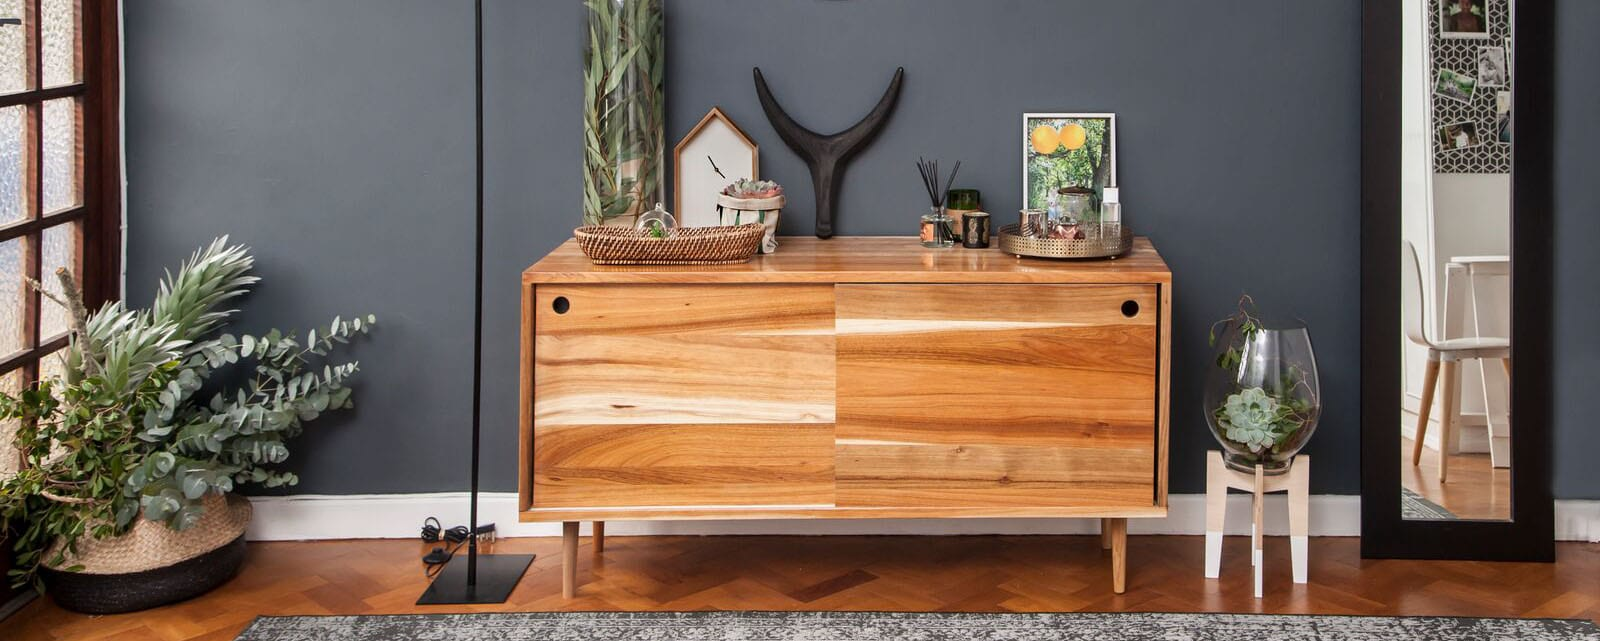 Furniture shop south africa manufacturer home custom